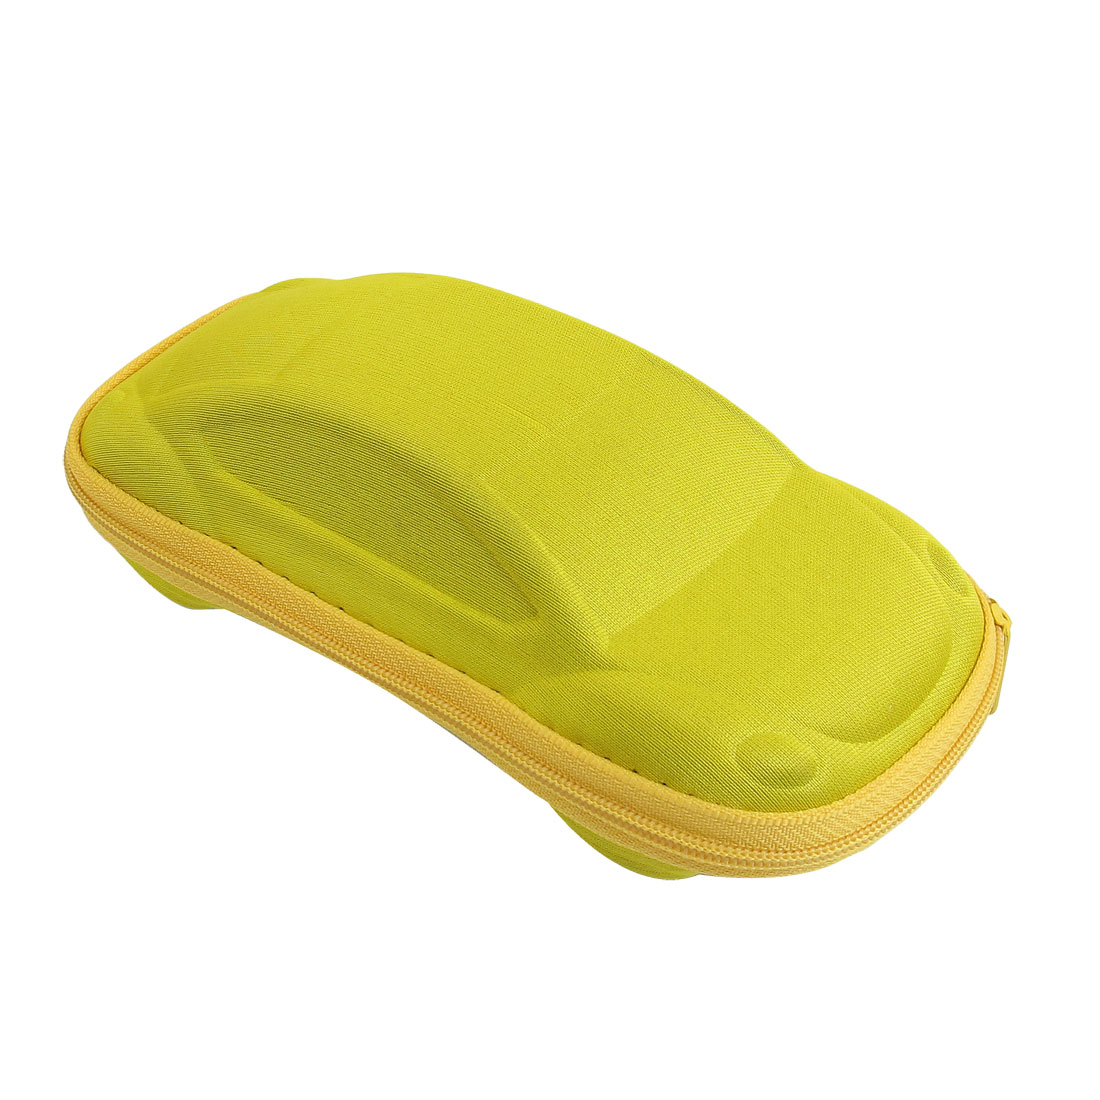 Yellow Car Shaped Zippered Eyeglasses Sunglasses Case Box